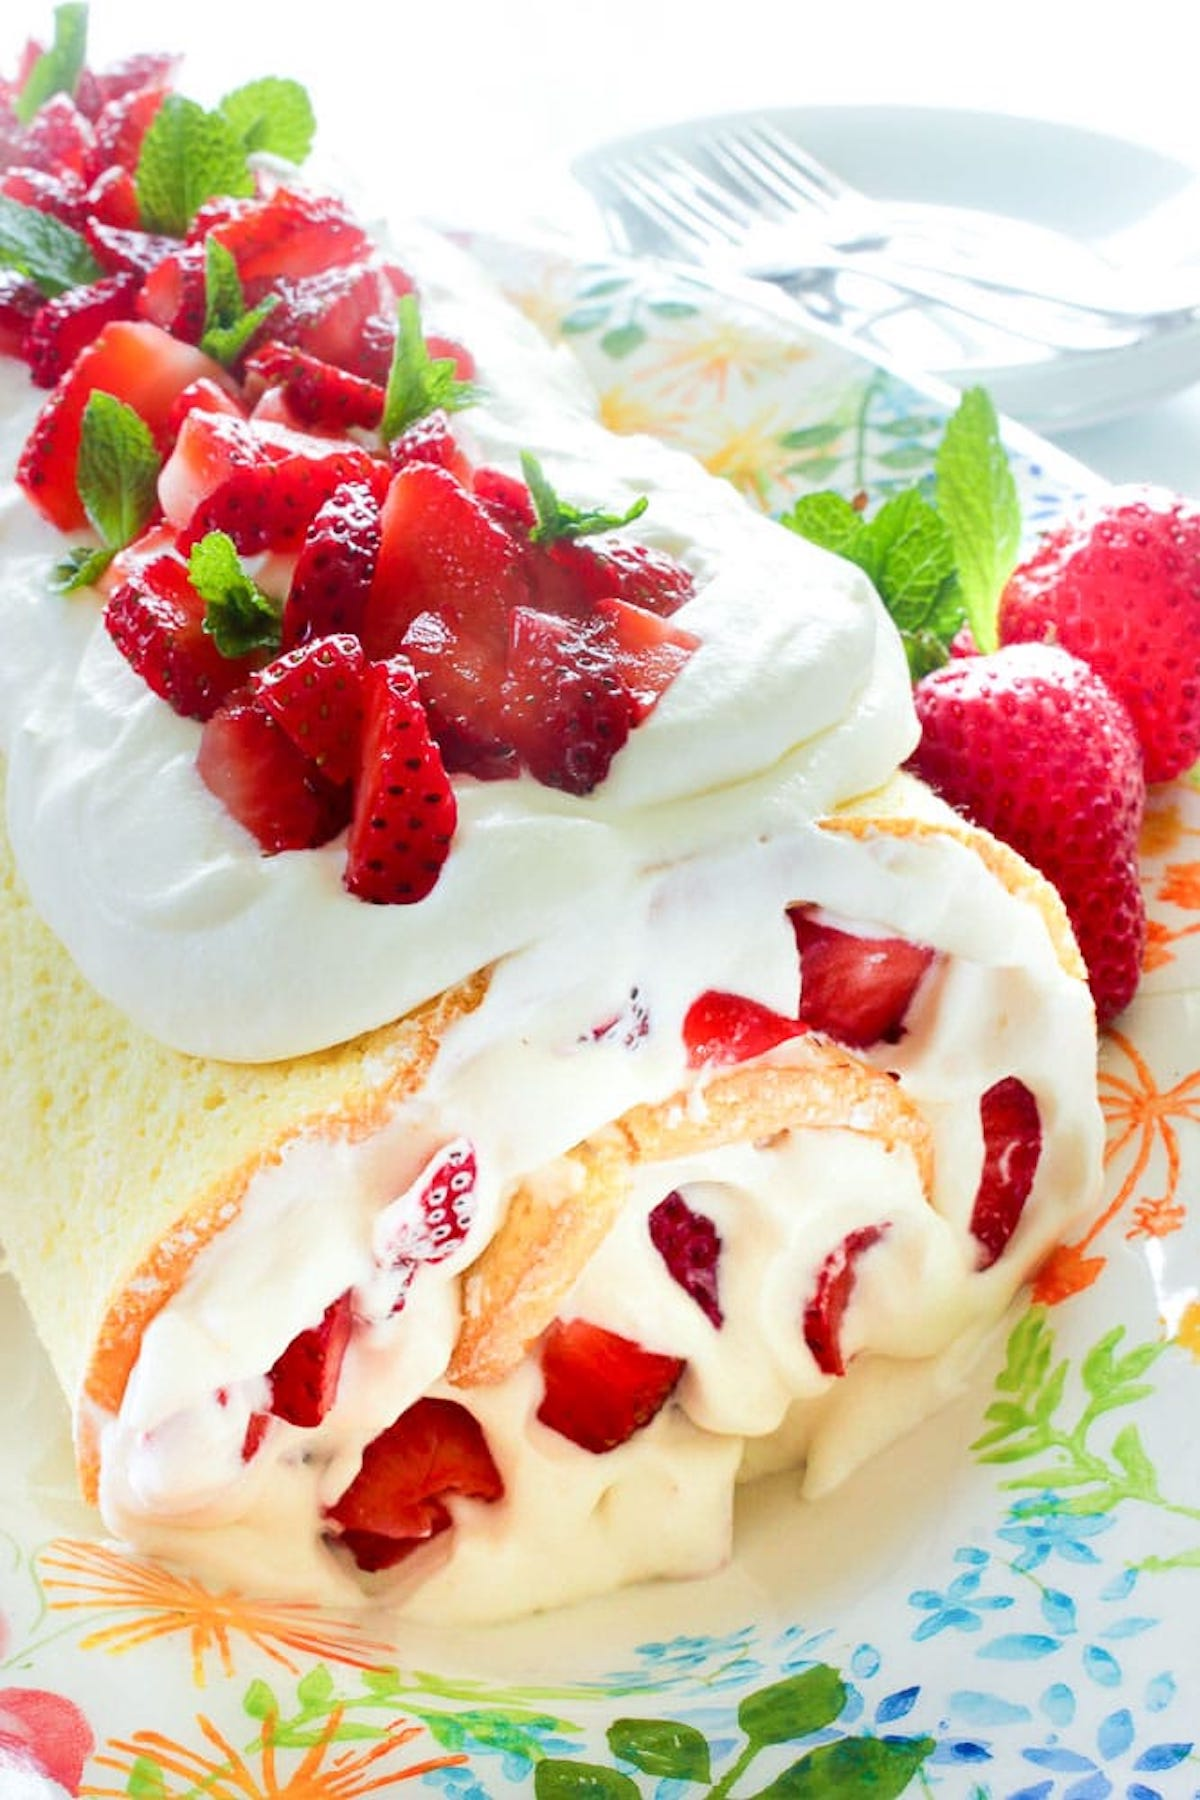 A yellow cake roll filled with cream & strawberries and also topped with strawberries and whipped cream.